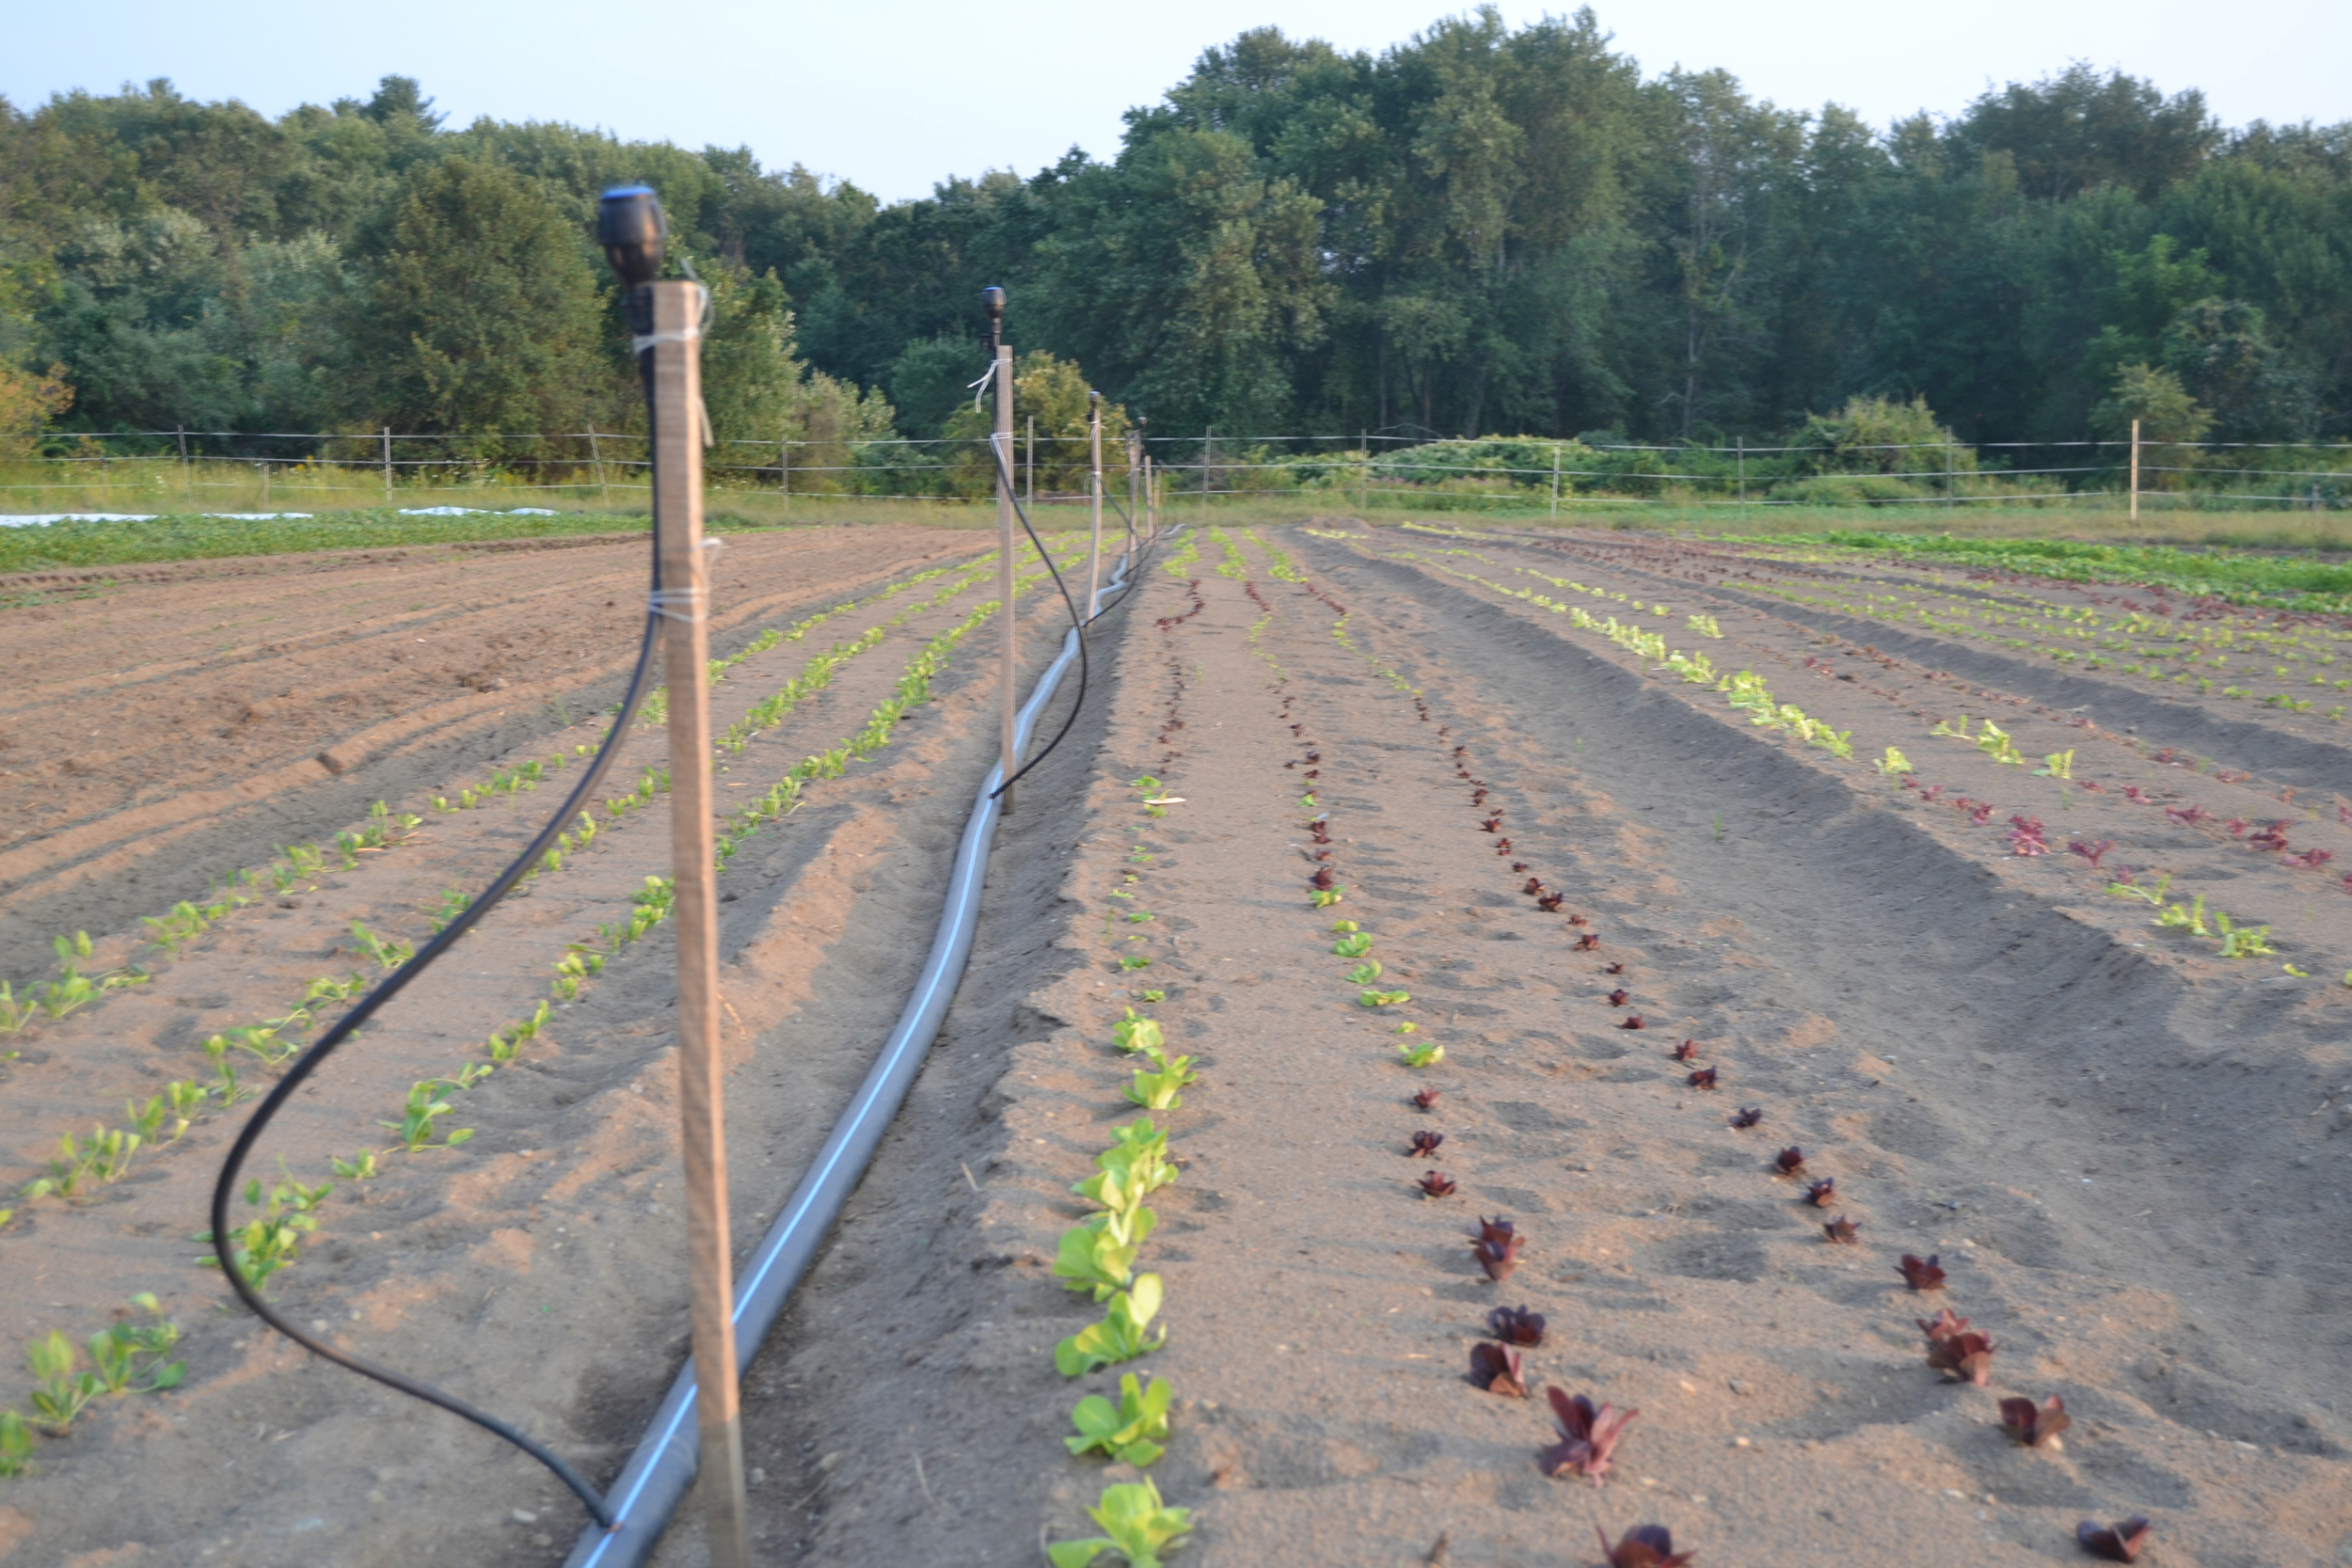 Believe it or not, these lettuce seedlings were irrigated only 2 days ago!